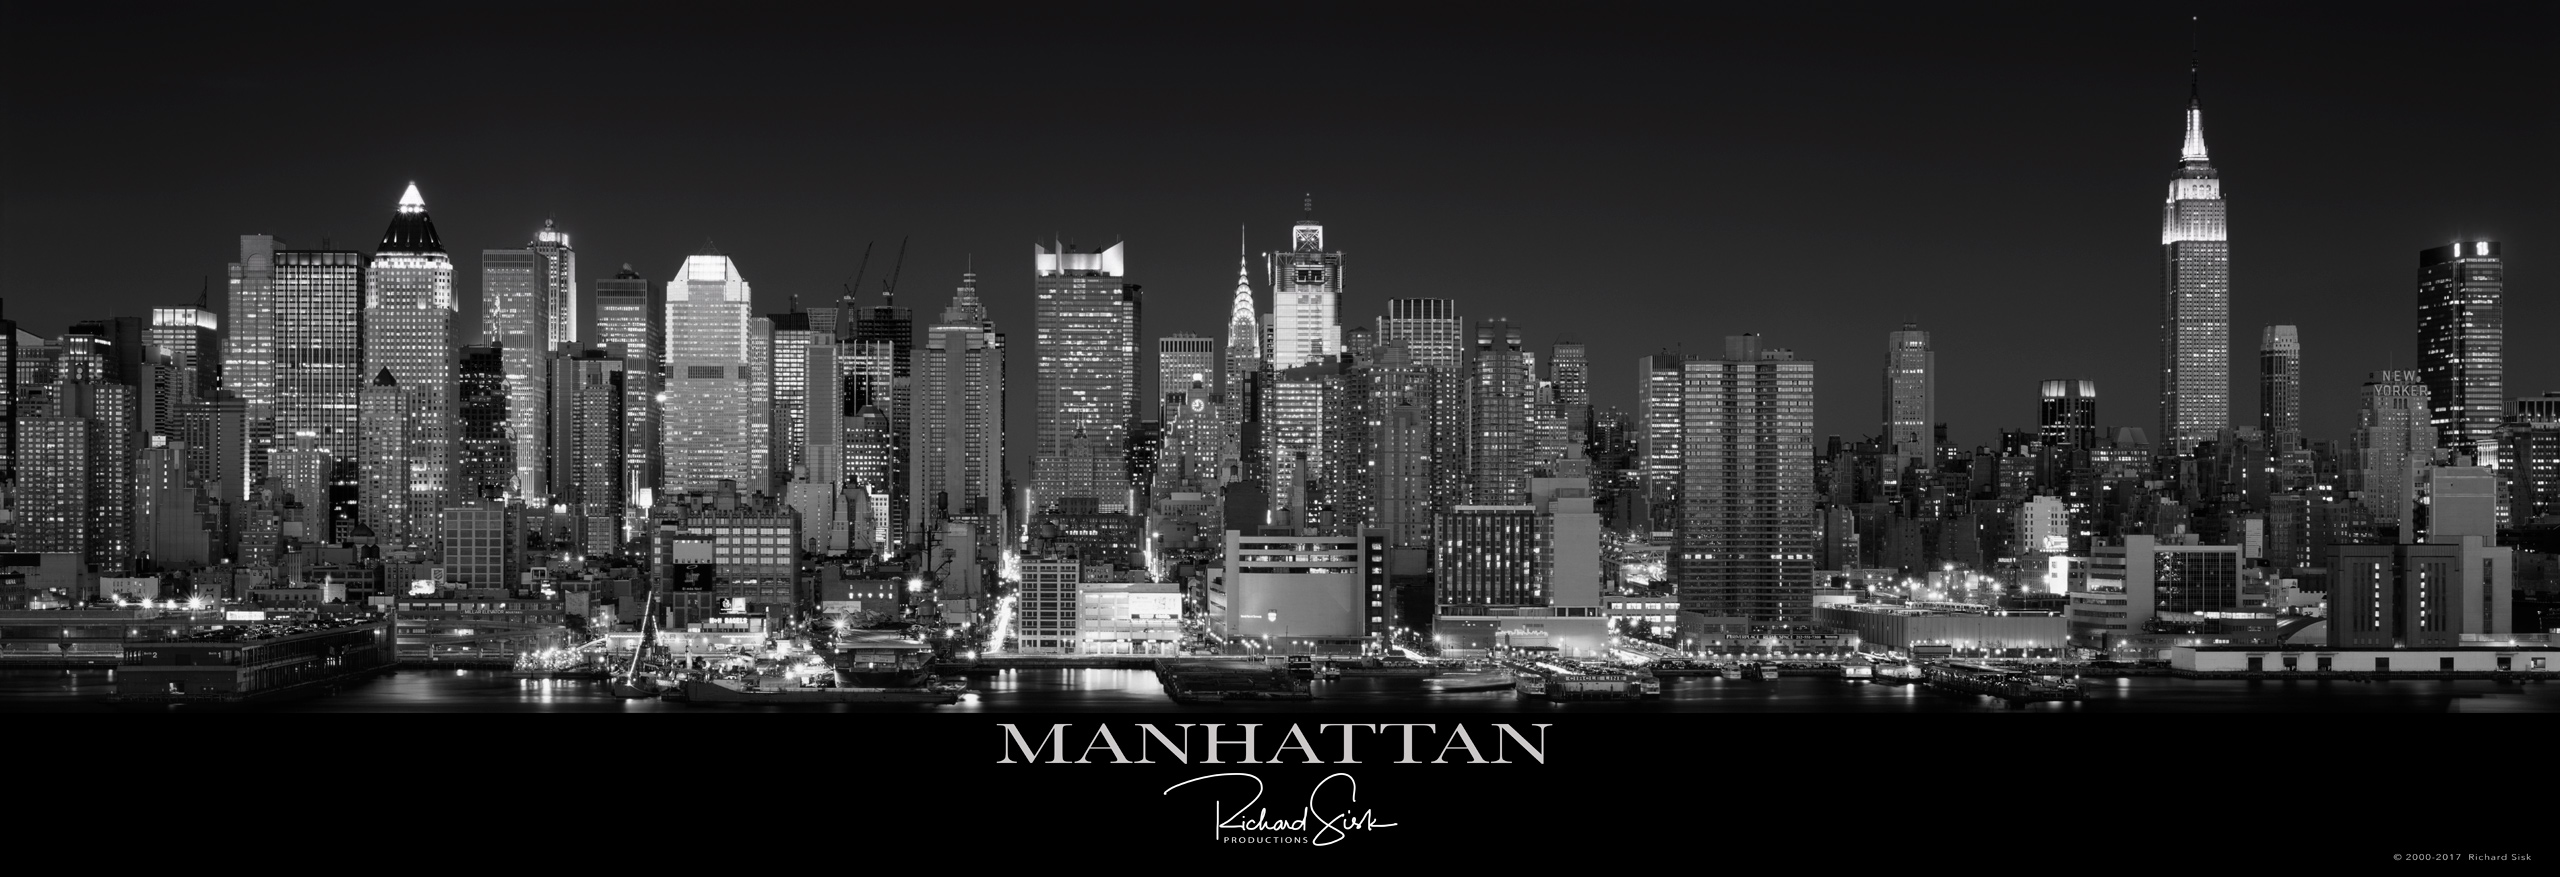 manhattanBW1950WS